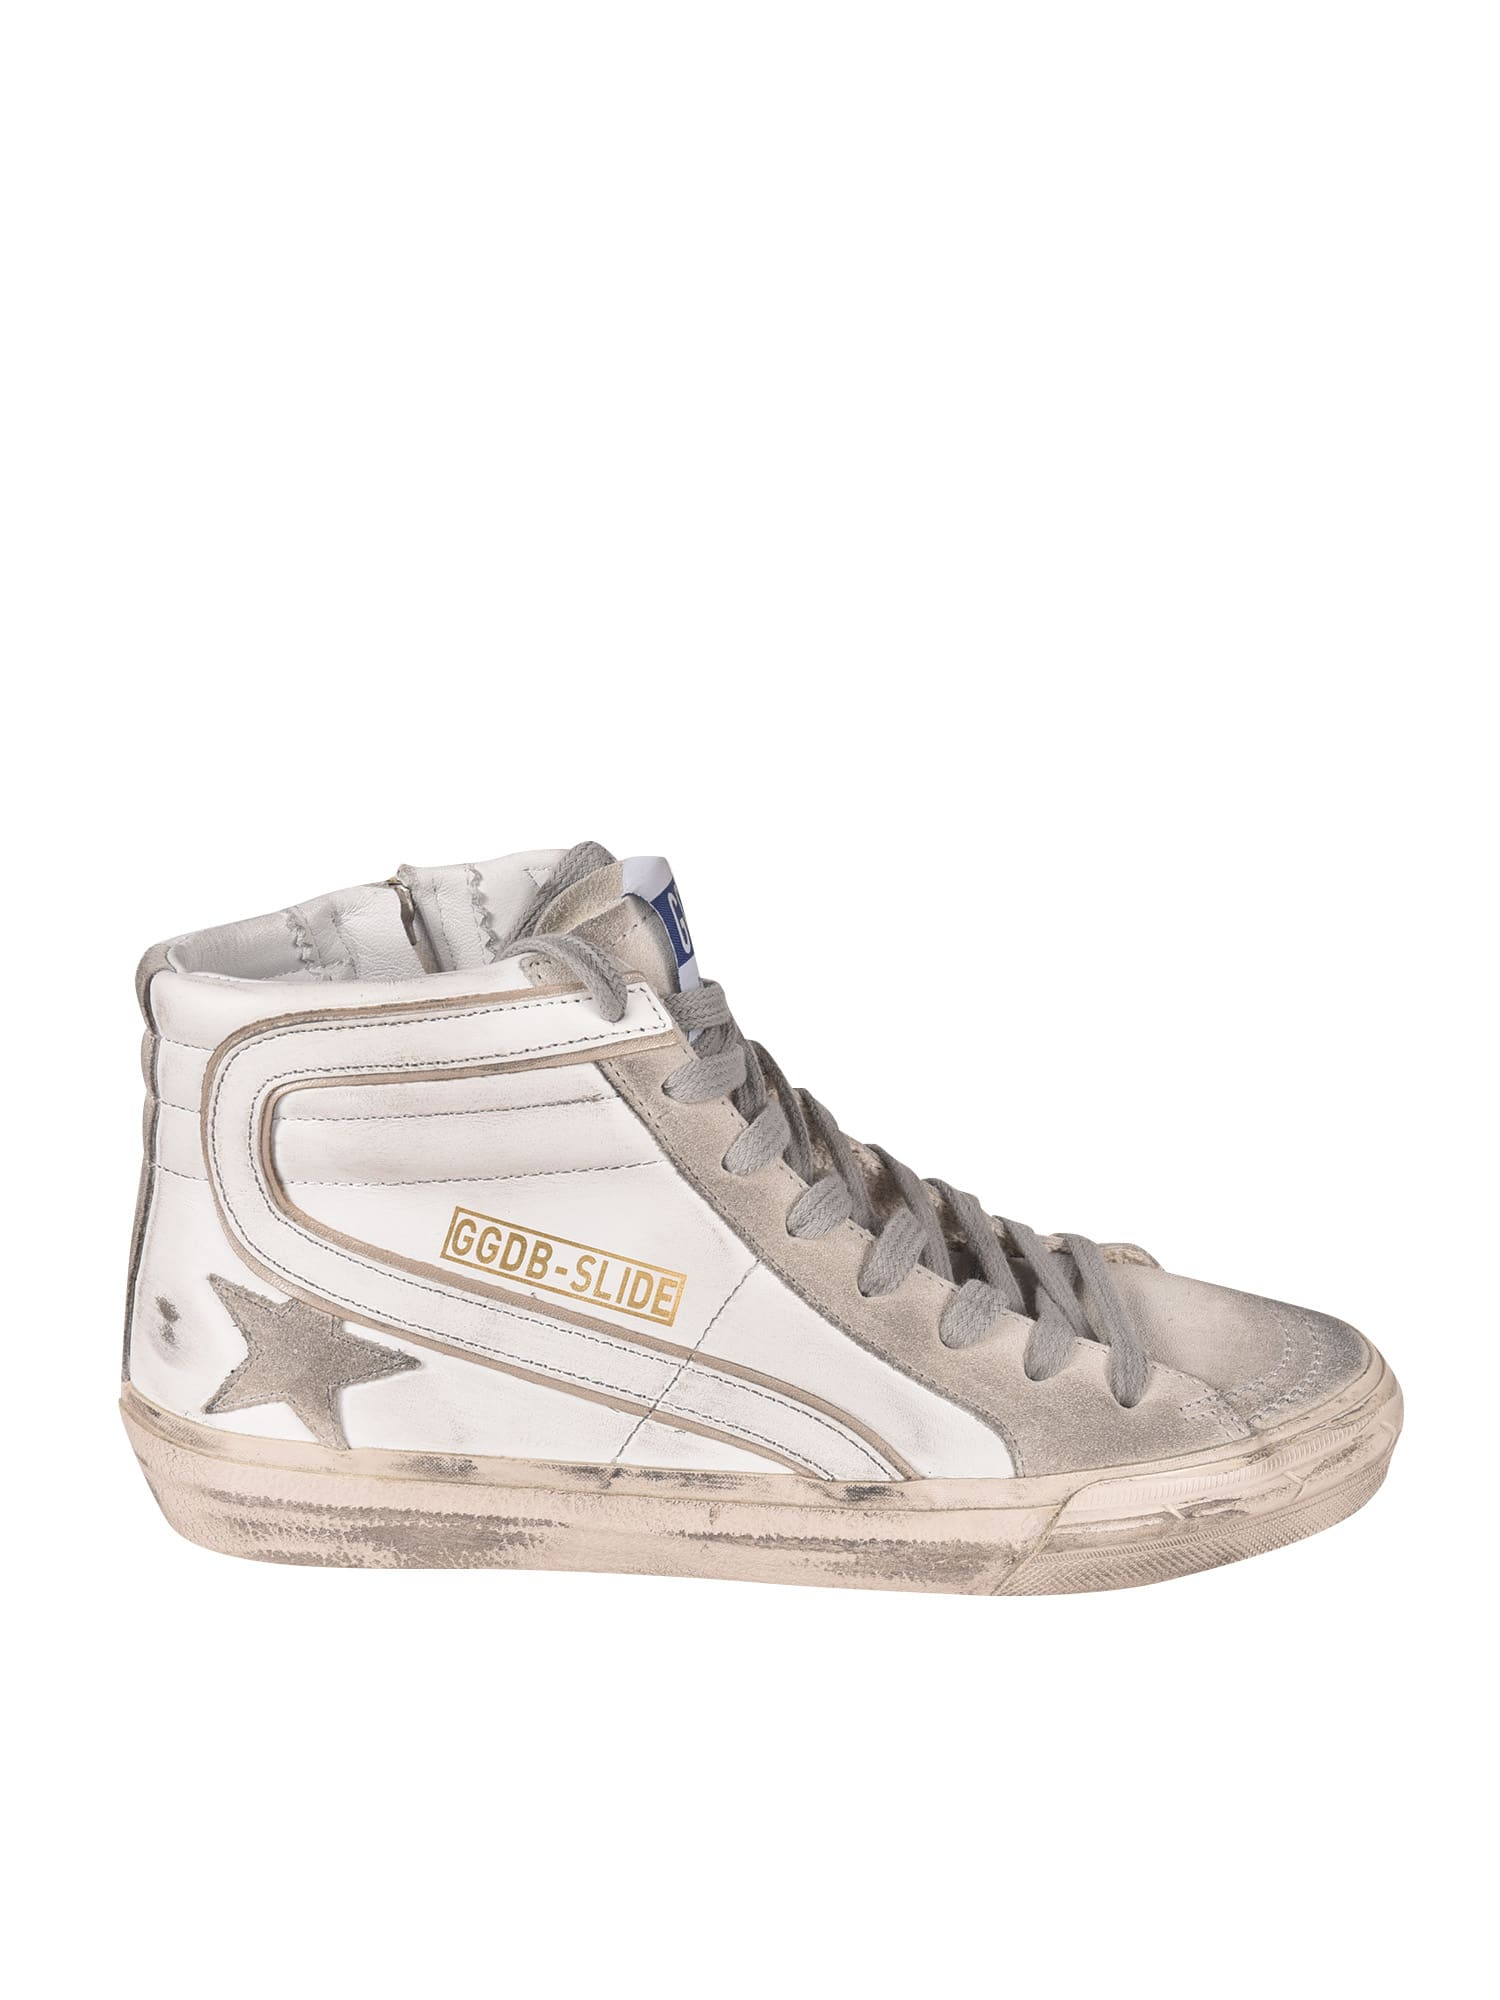 Buy Golden Goose Classic Slide Sneakers online, shop Golden Goose shoes with free shipping